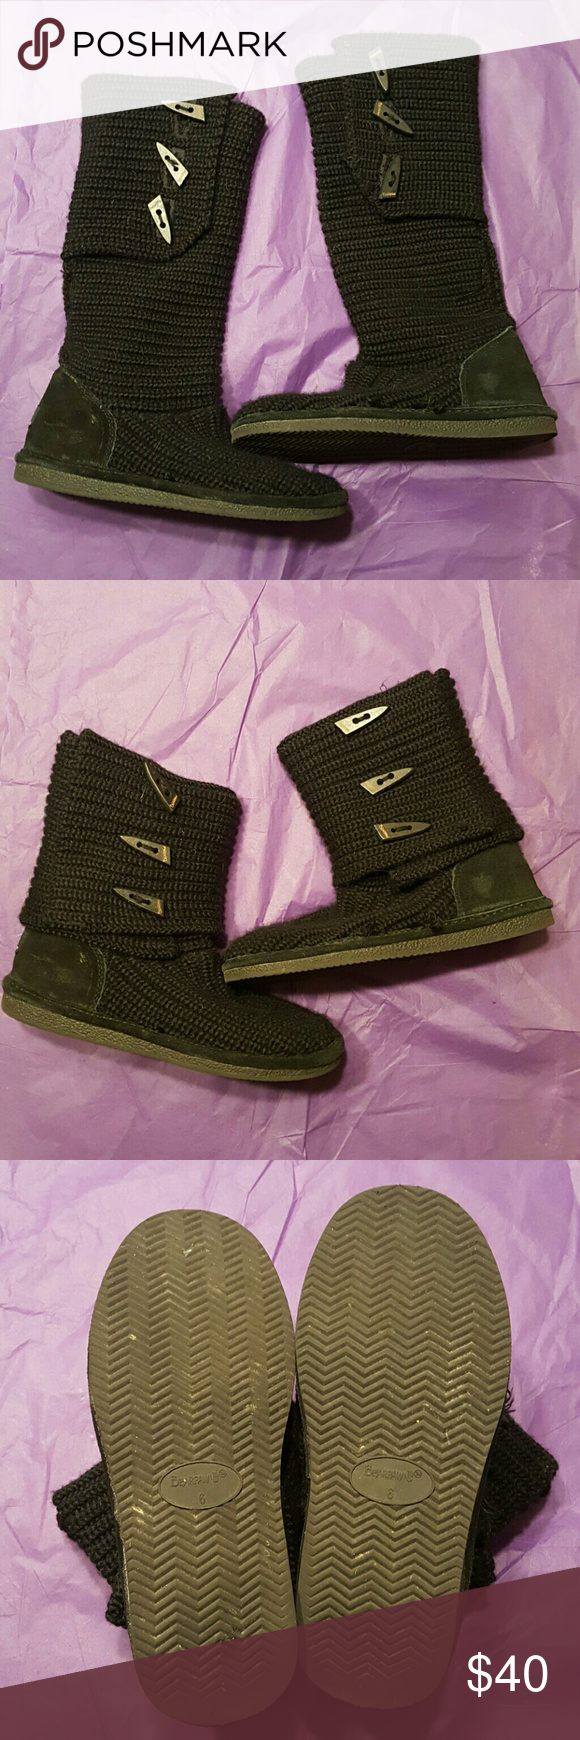 Bearpaw Black Knit Slipper Boots Bearpaw solid black knit slipper boots with rubber soles. Can be worn as standard mid-calf boot or folded down as a cuffed ankle boot. Functional toggles inside and out will show either way.  Very little wear on soles. No rips or stains. BearPaw Shoes Ankle Boots & Booties